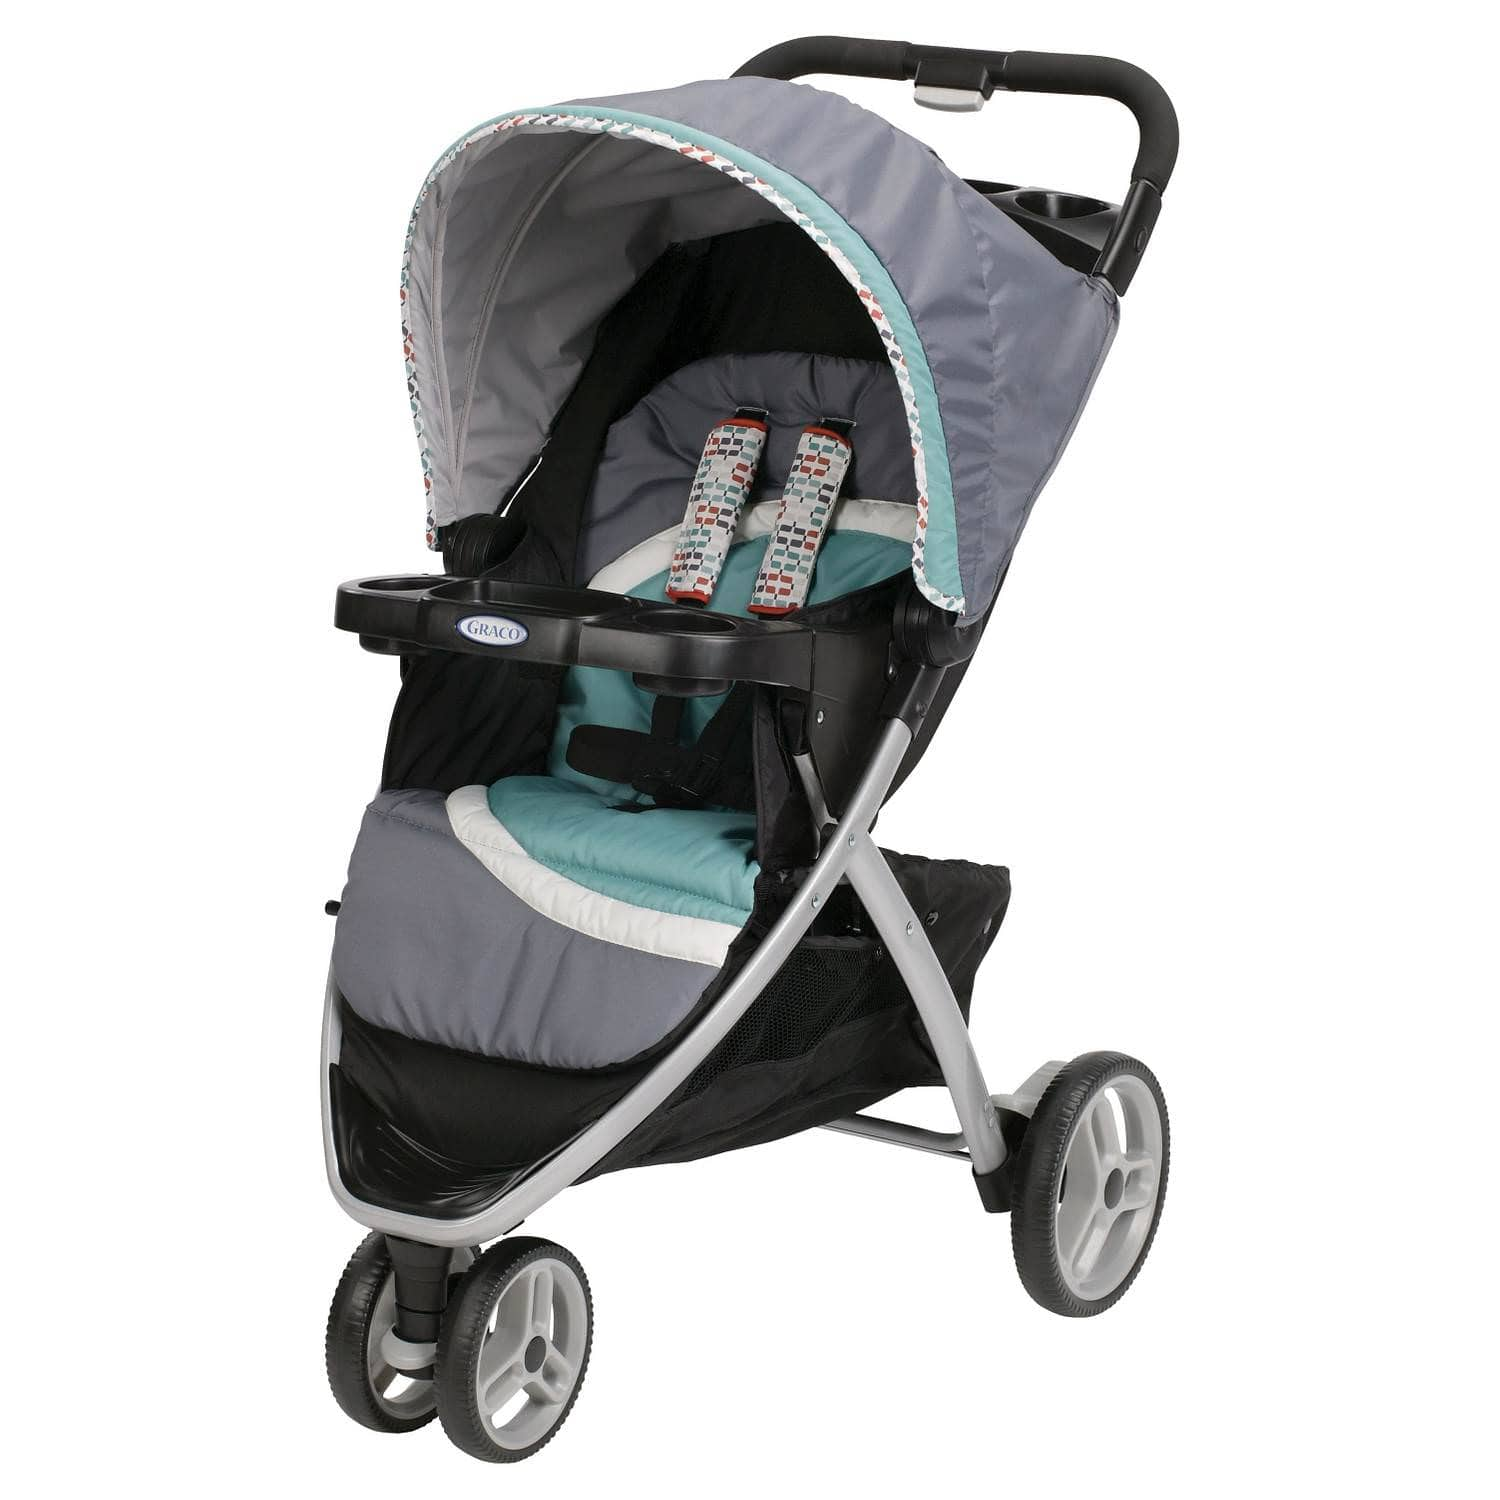 Graco Pace Click Connect Stroller for $69.99 at Target (or $66.49 w/ REDcard)